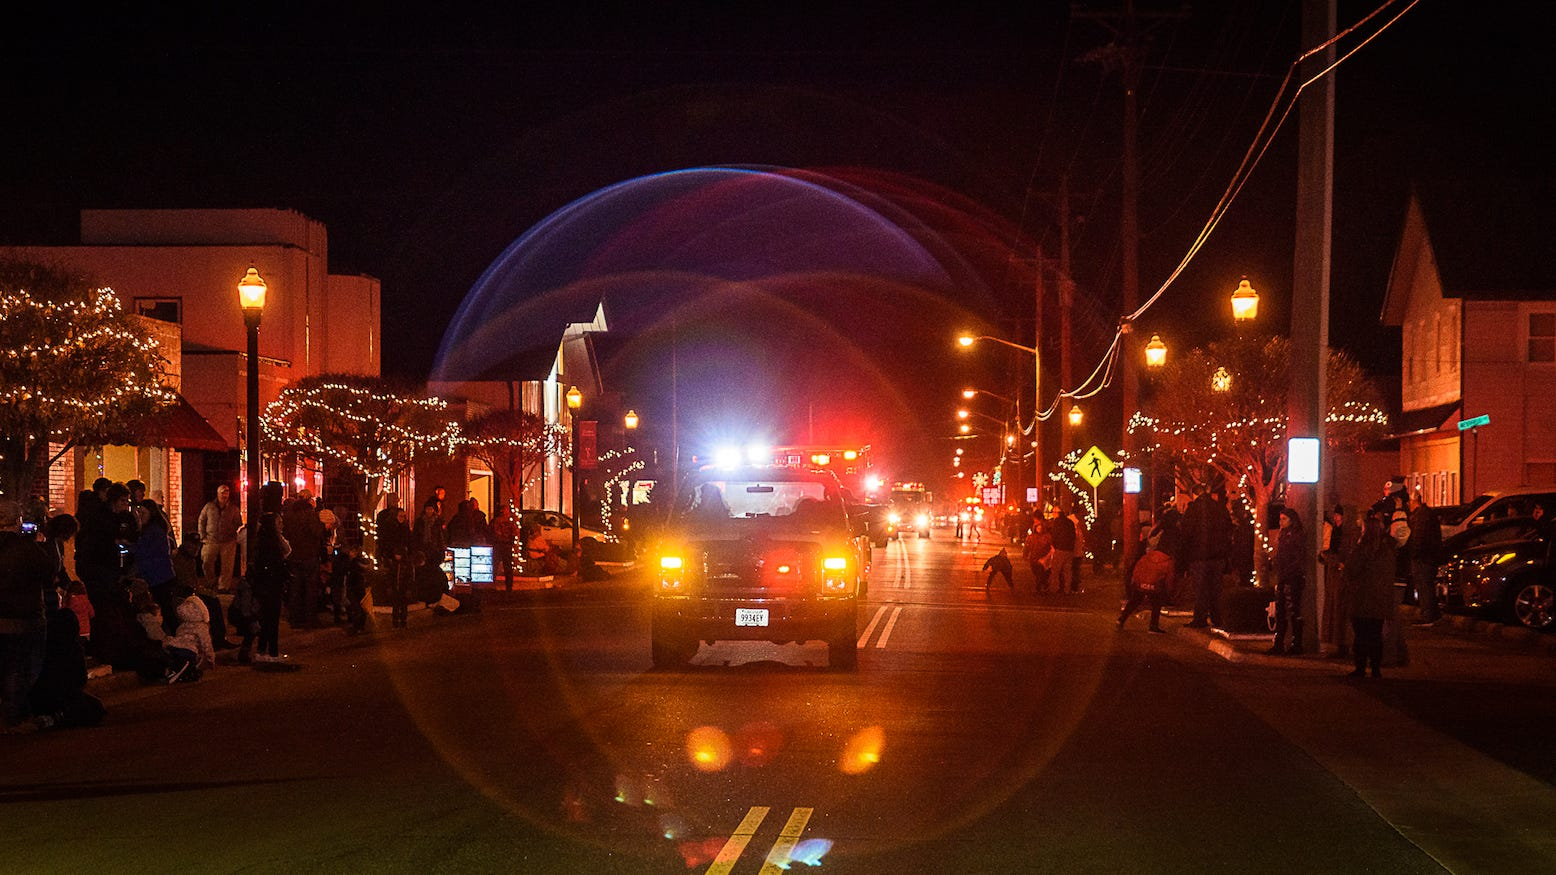 The Exmore Fire Department leads off   off the town's annual Christmas parade on Main Street on Saturday, Dec. 8.